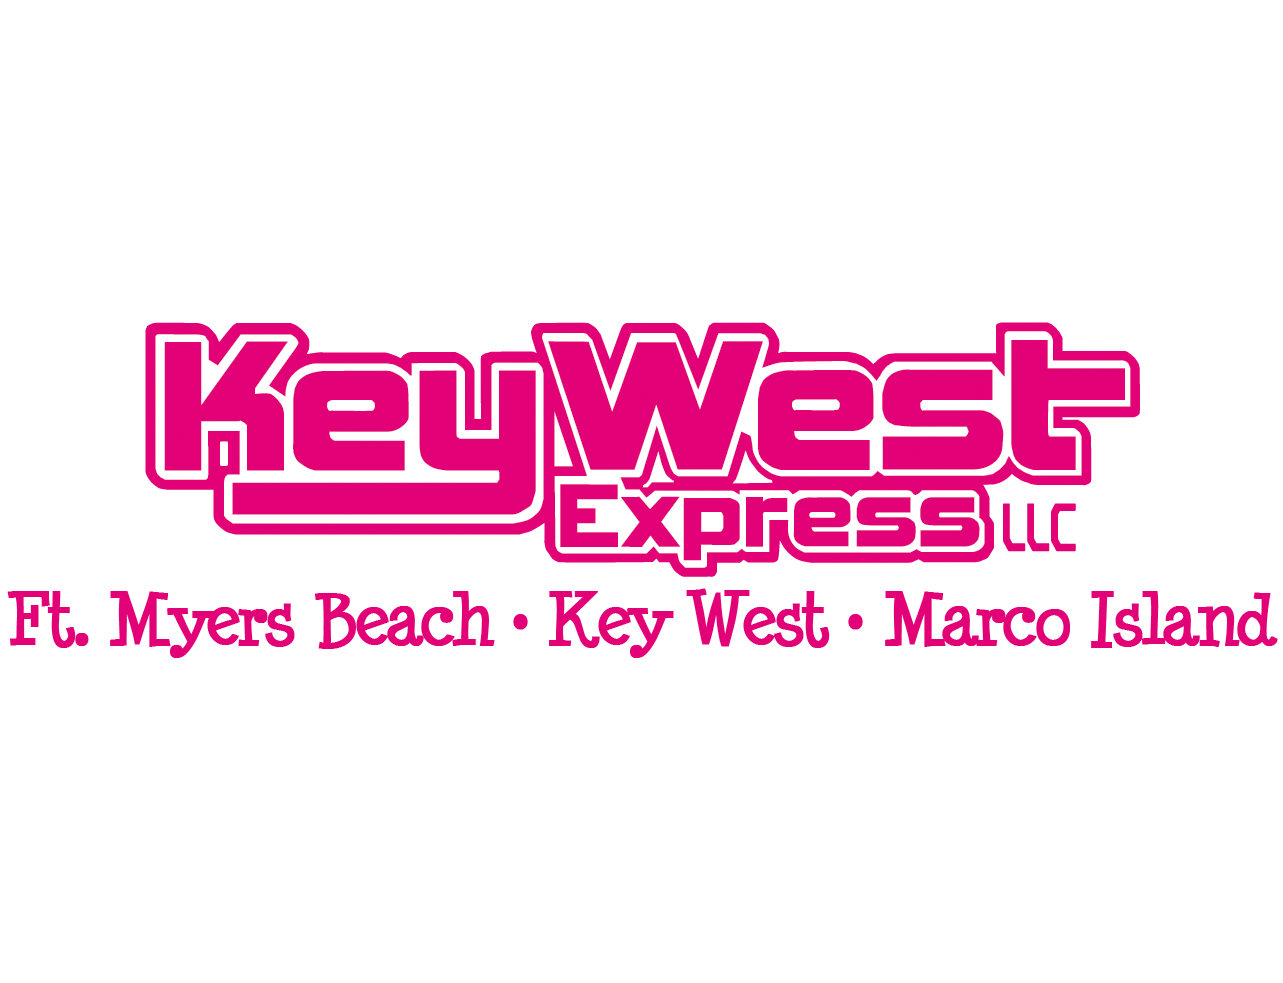 Coupons & Deals in Key West and the Florida Keys